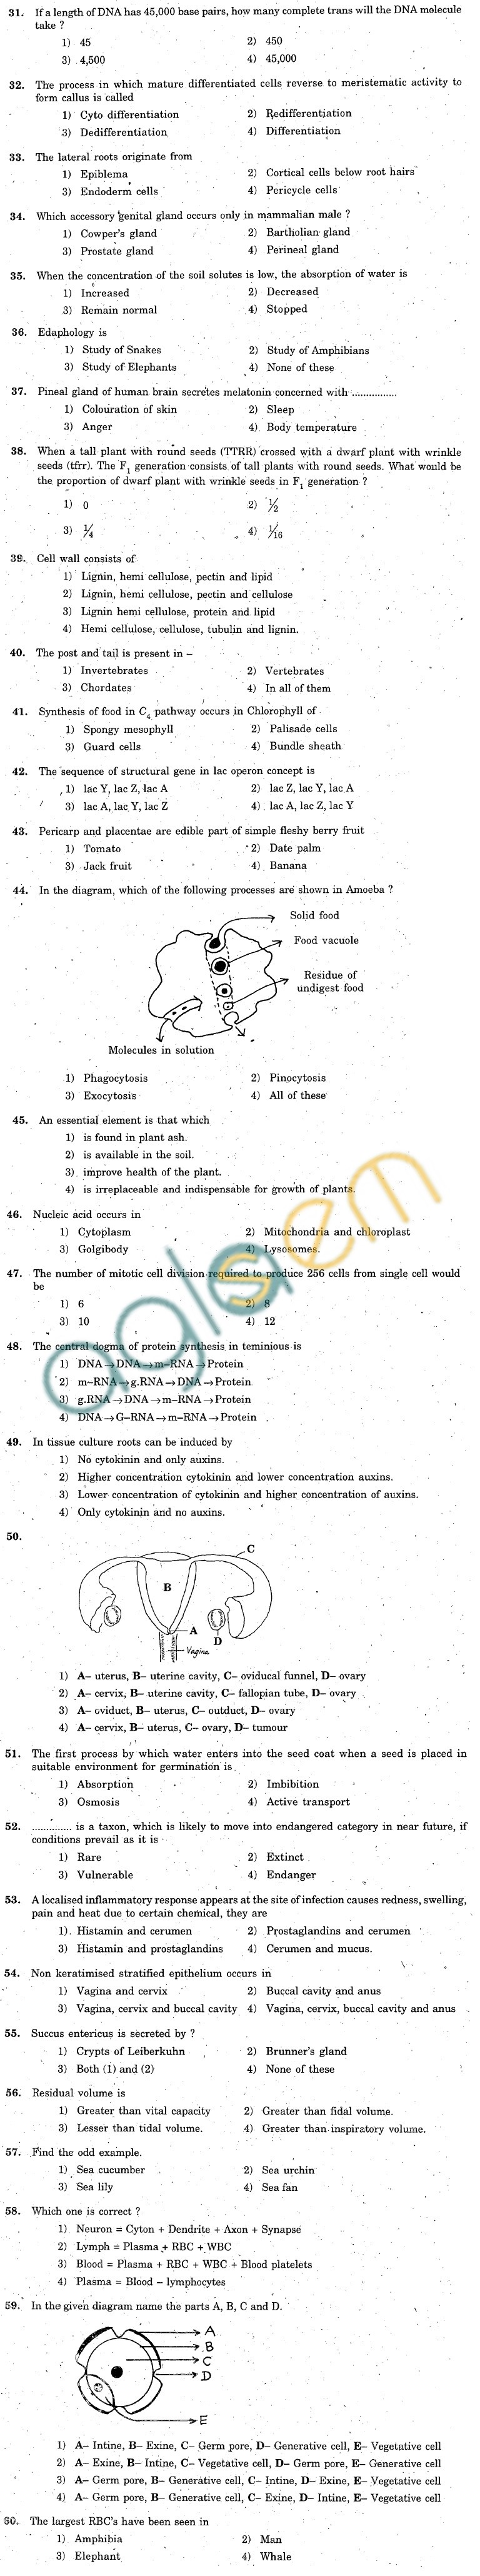 KCET 2007 Question Paper - Biology